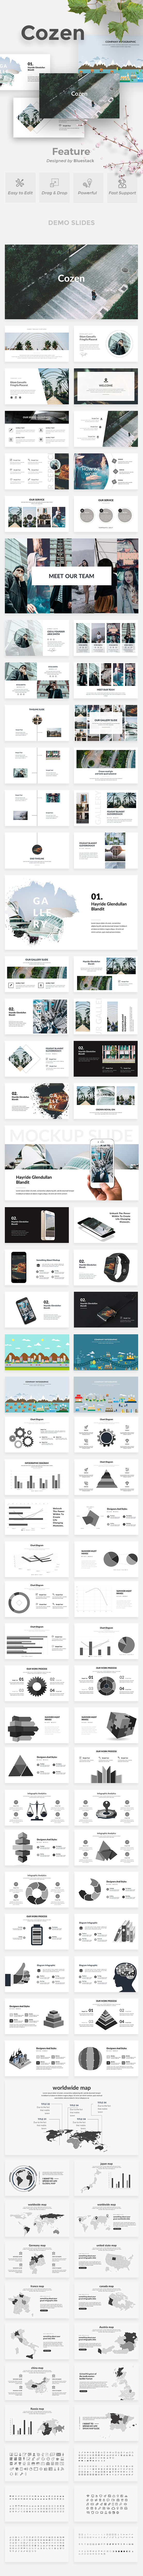 Cozen Creative Google Slide Template - Google Slides Presentation Templates